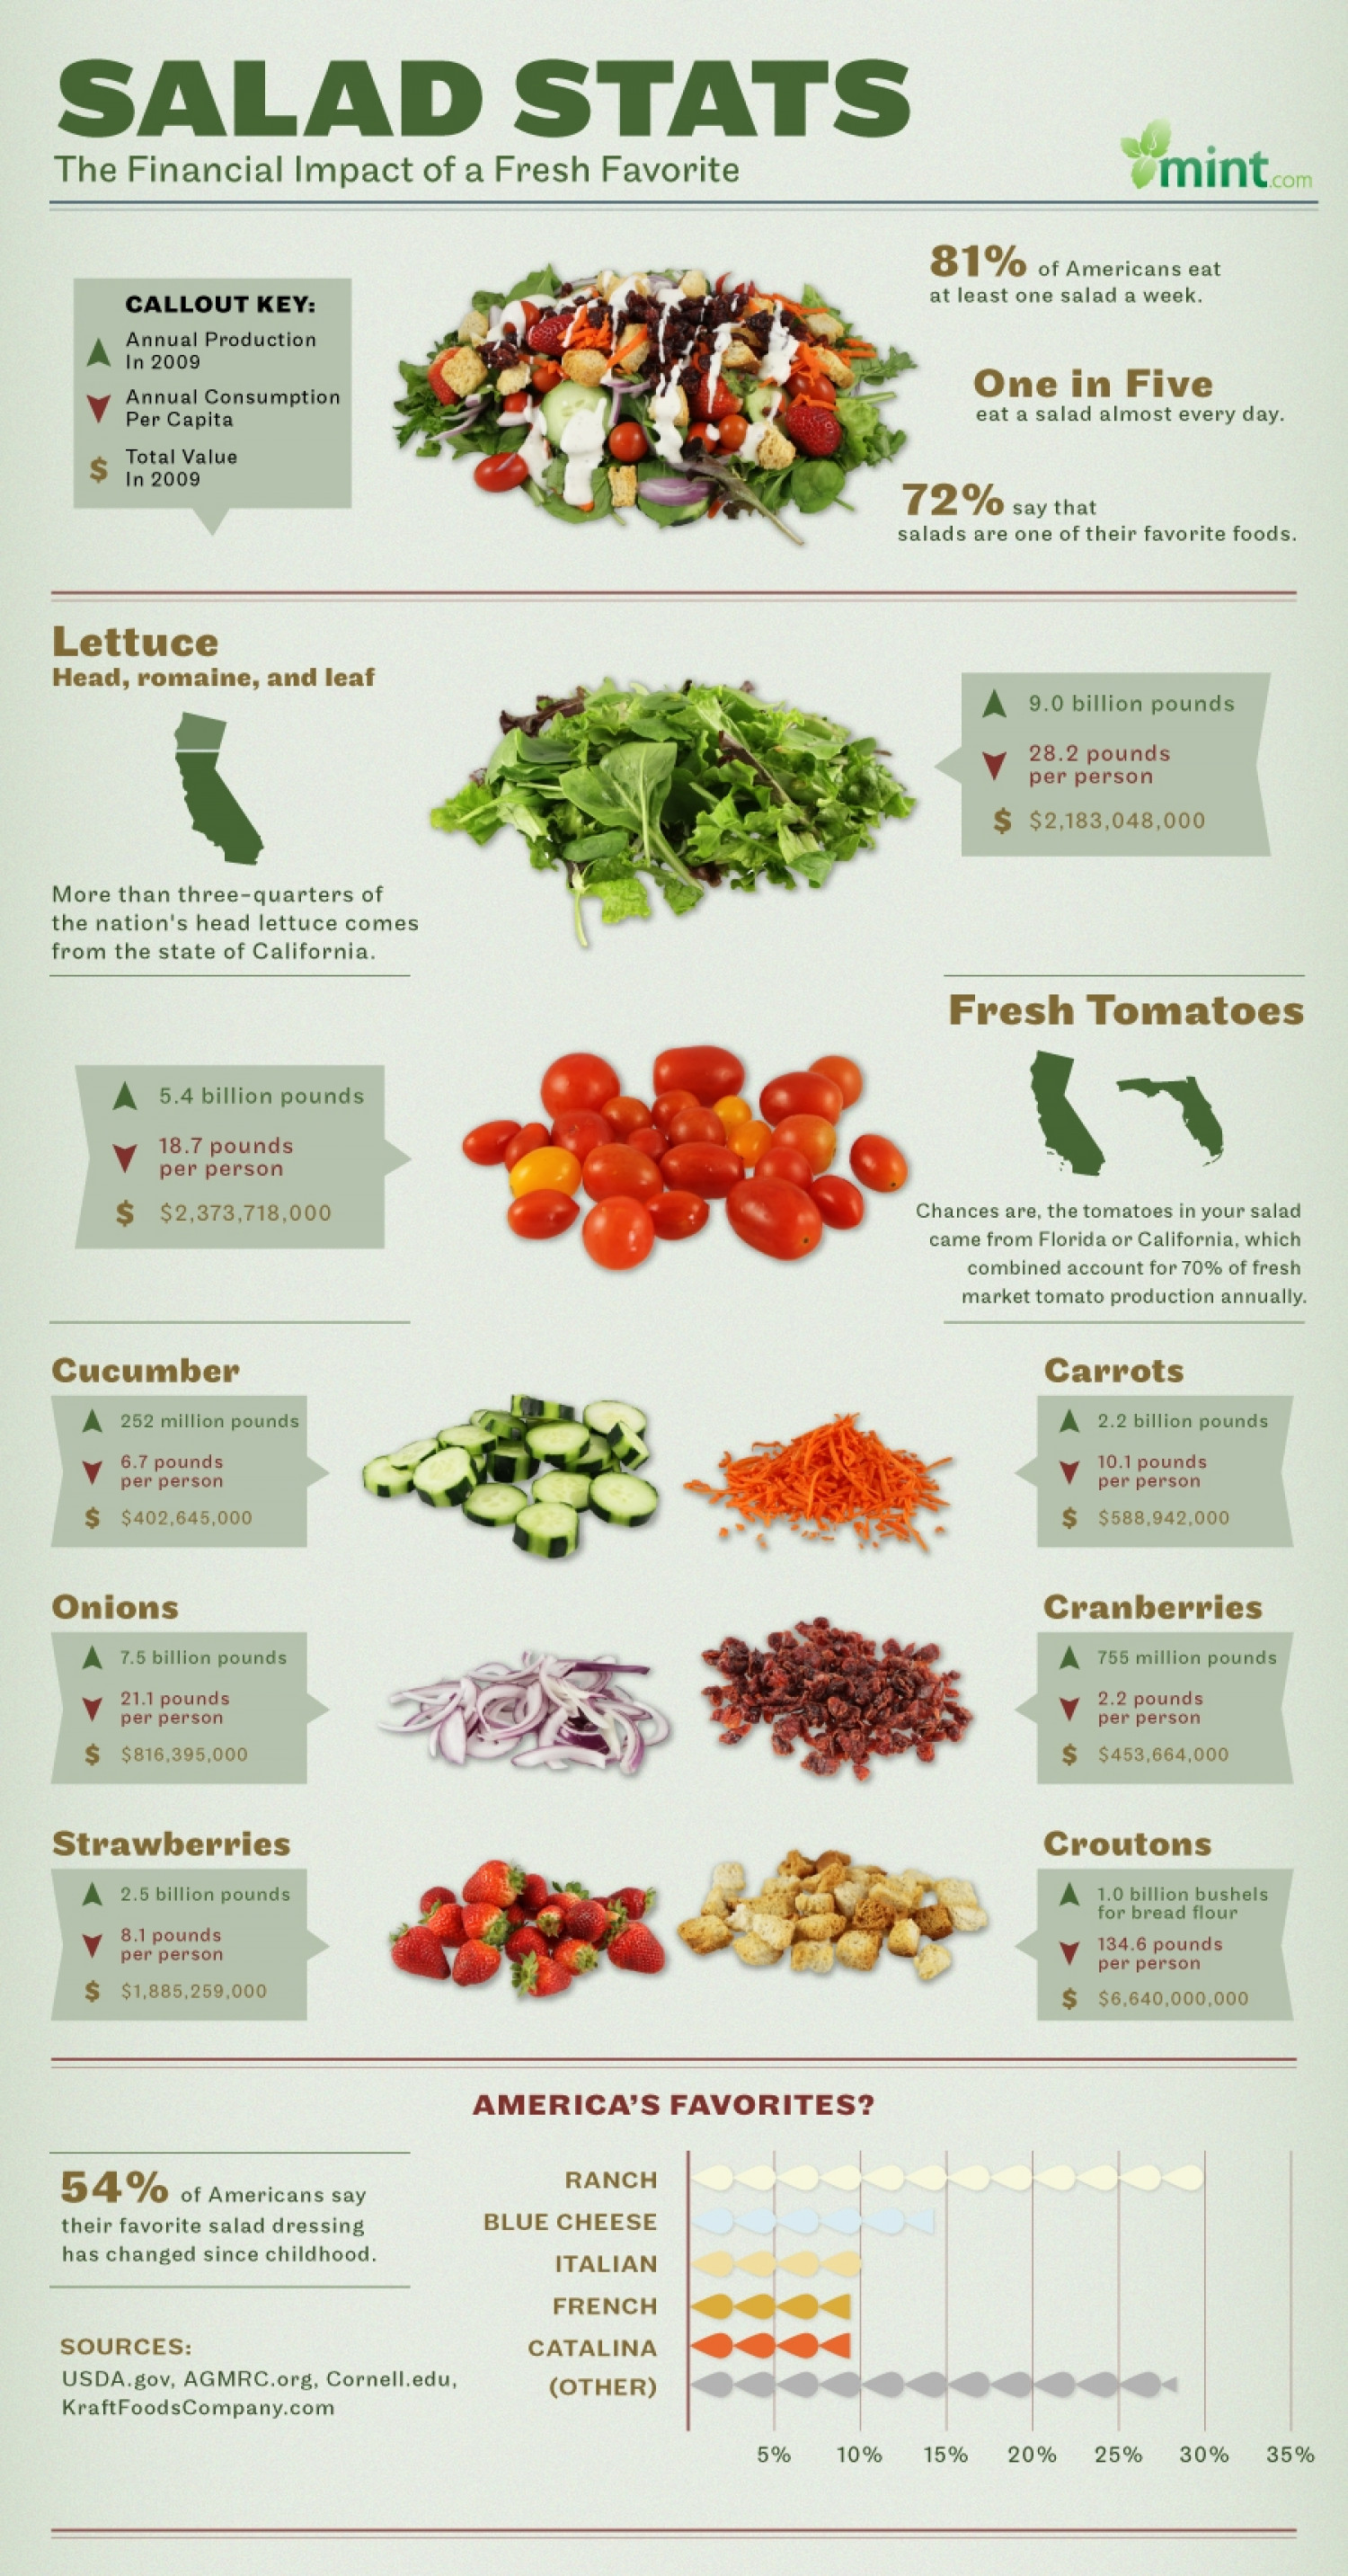 Salad Stats: The Financial Impact of a Fresh Favorite Infographic